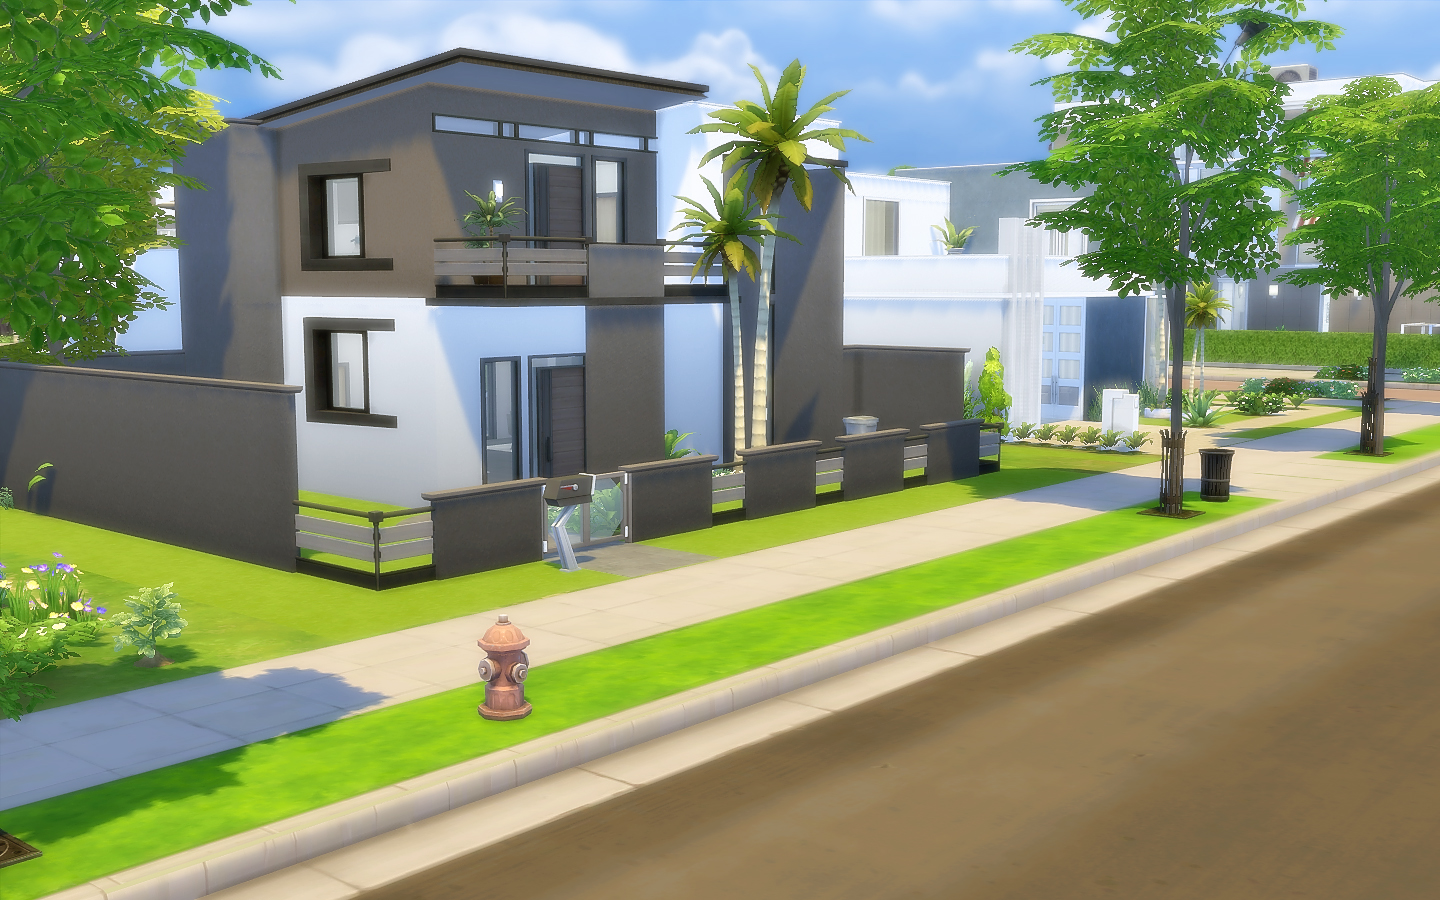 house 40 modern small the sims 4 via sims. Black Bedroom Furniture Sets. Home Design Ideas